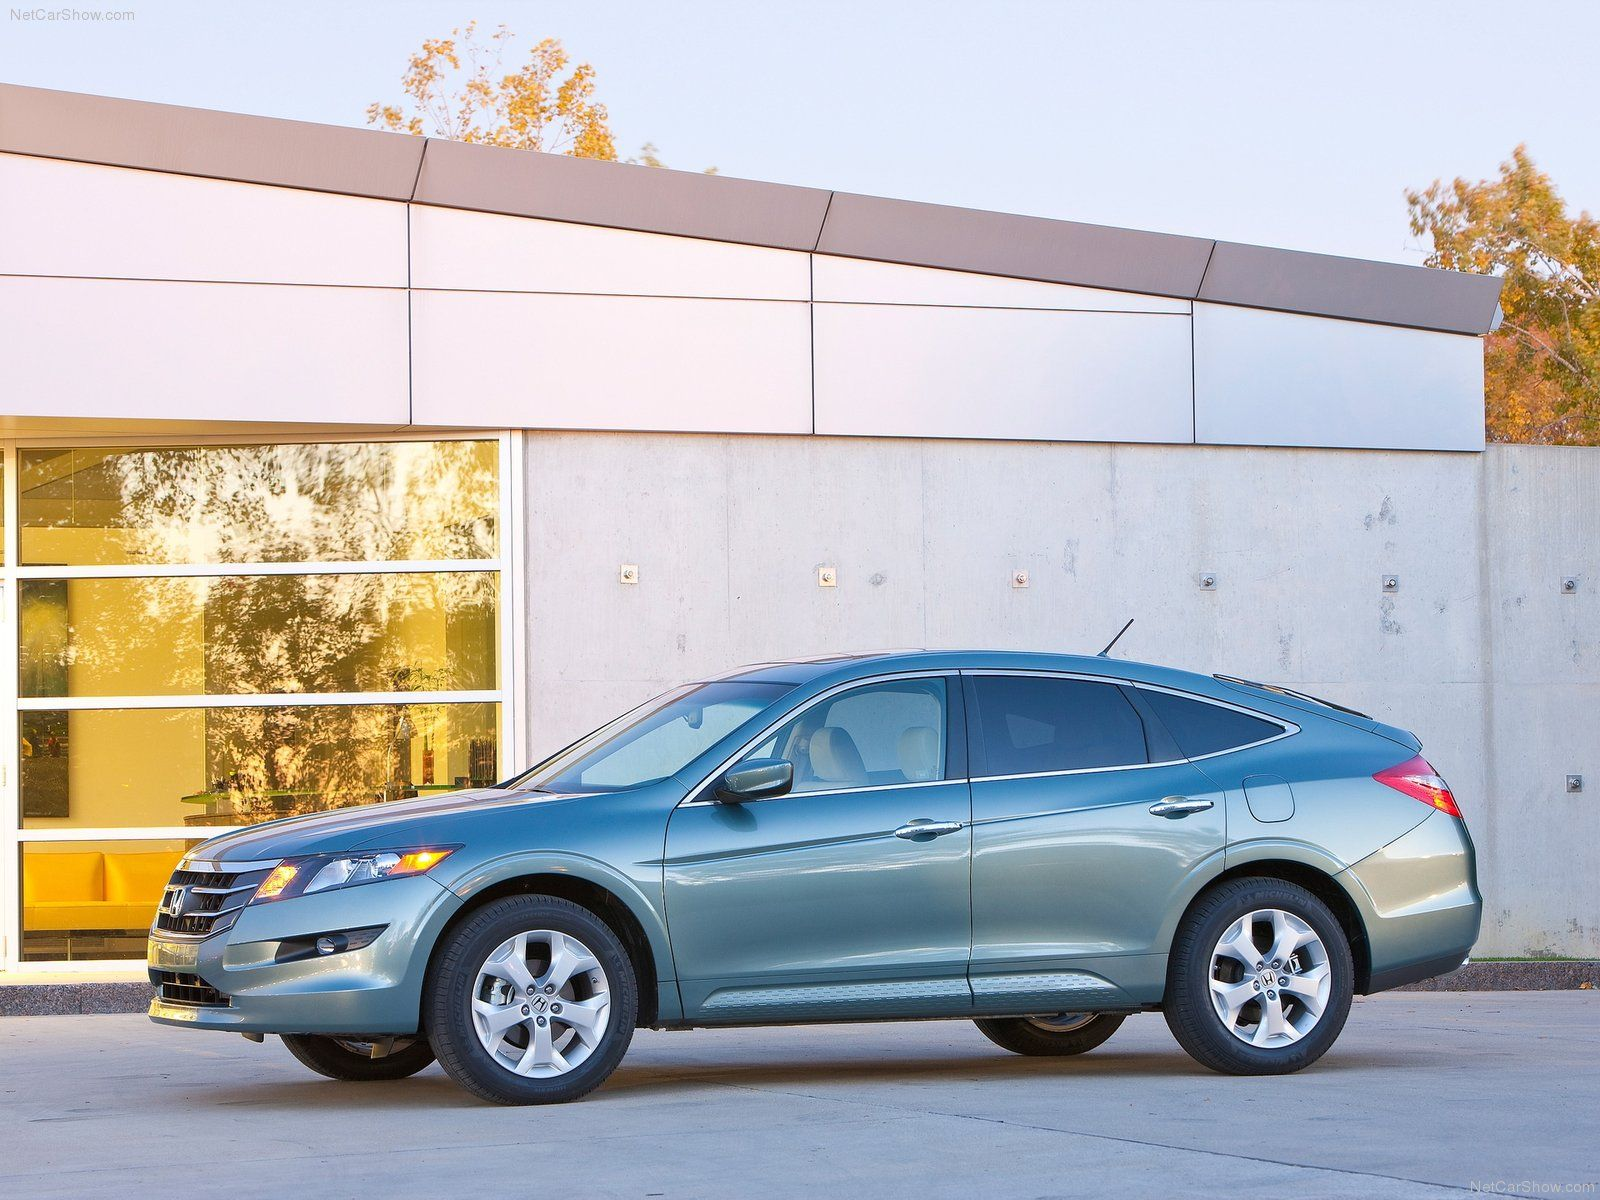 The Honda Crosstour Hatchback. Long, lean, and ready to rock.